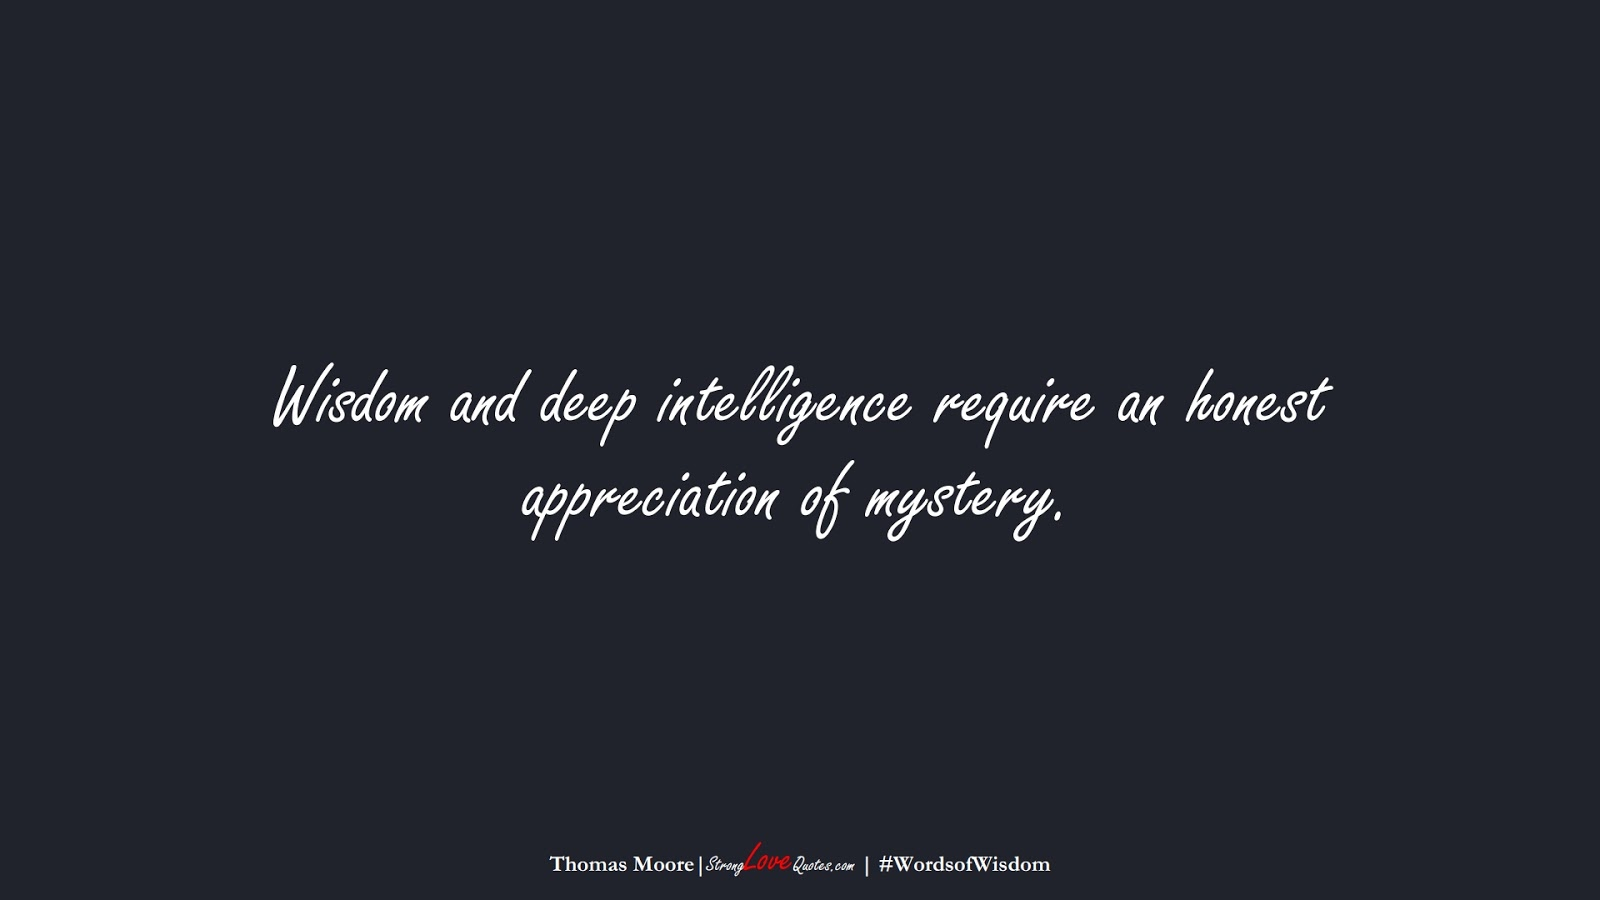 Wisdom and deep intelligence require an honest appreciation of mystery. (Thomas Moore);  #WordsofWisdom